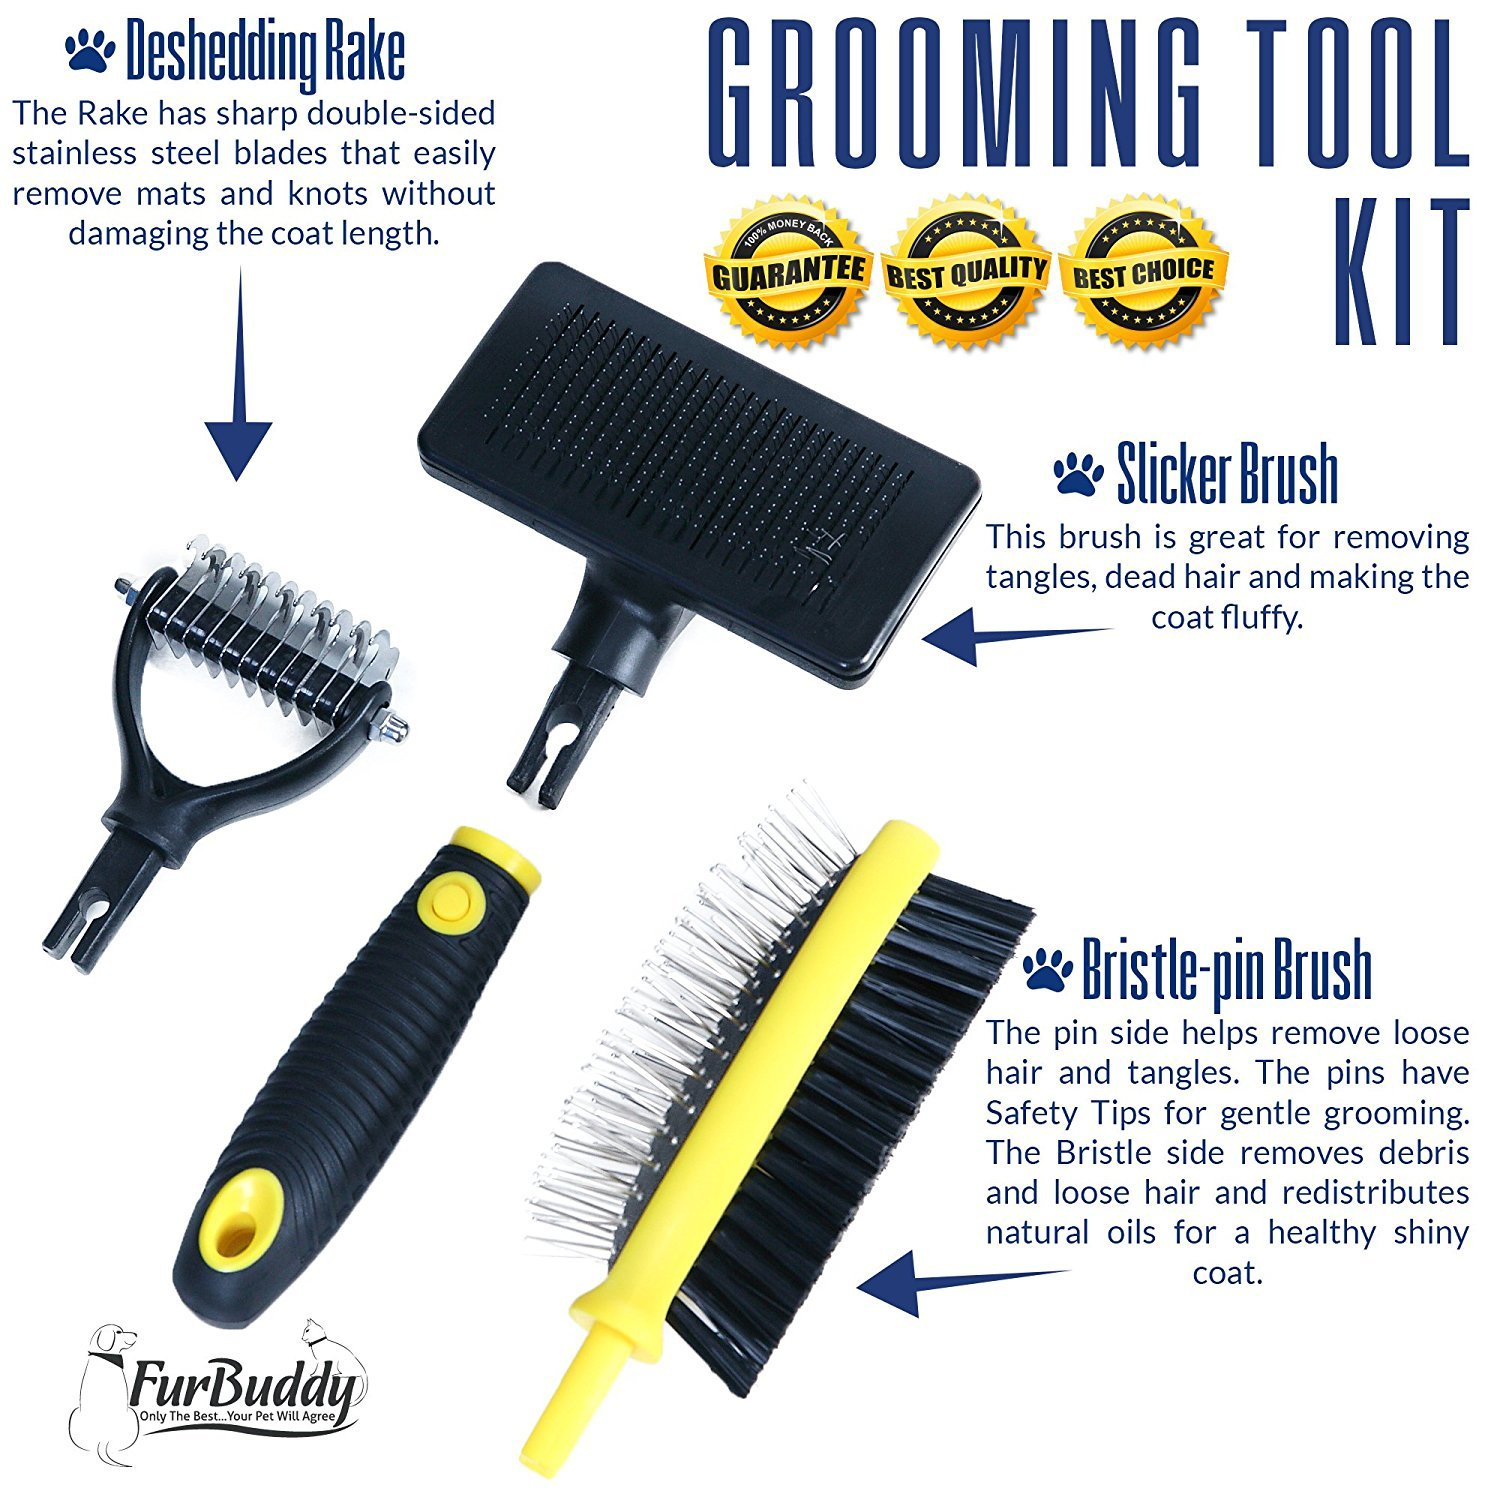 FurBuddy Pet Grooming Brush Kit for Any Type of Dog or Cat All in One Kit Eliminates Mats /& Hairballs